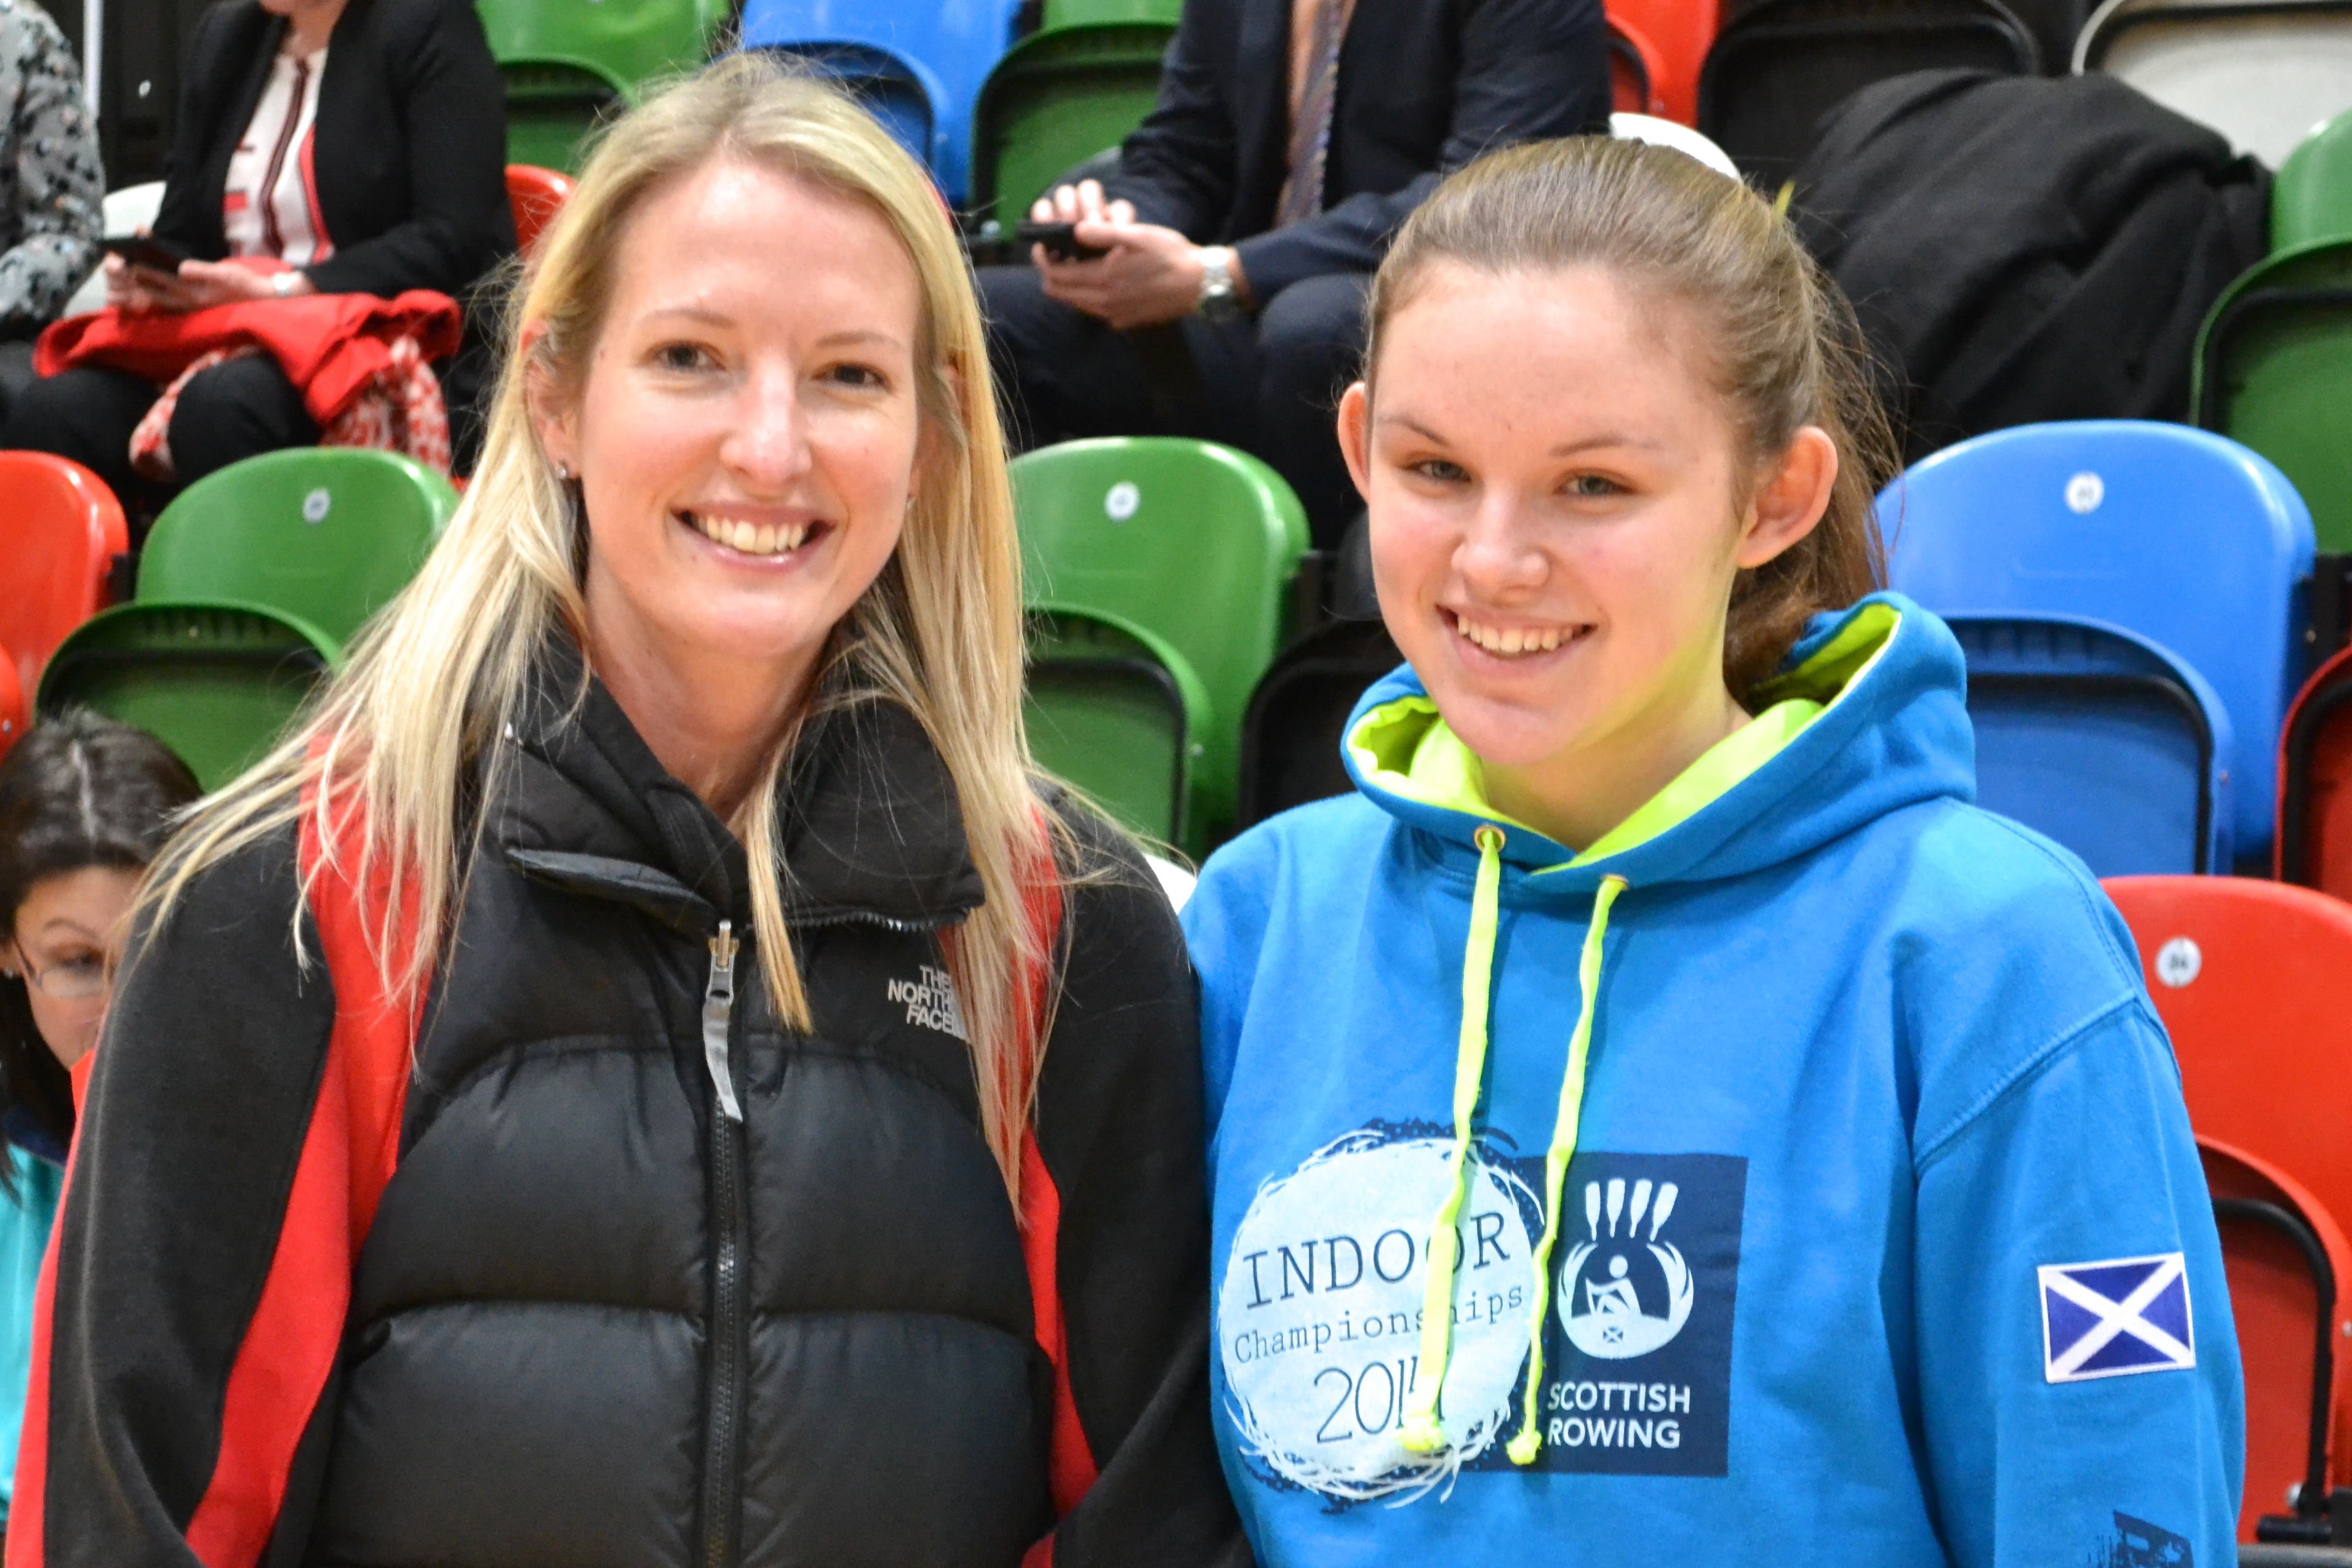 While in London Sara met Rachel Laybourne, a Team GB volleyball player at London 2012, and spent the afternoon with her trying out different games and encouraging participants